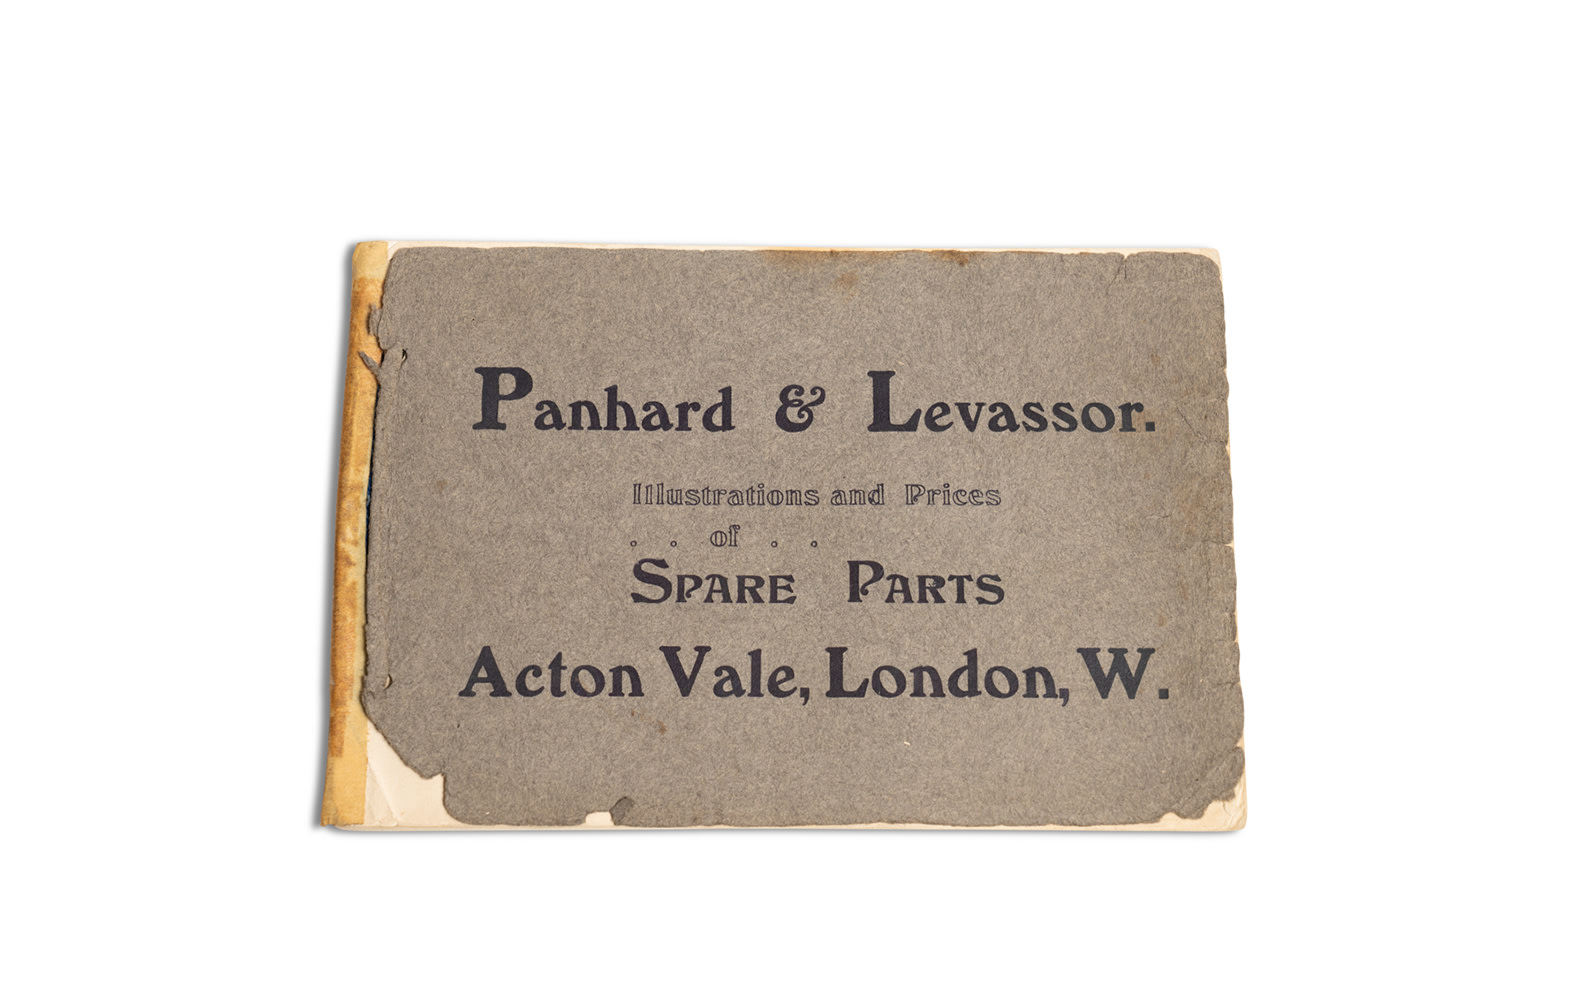 Panhard & Levassor Spare Parts Catalogue, c. early-1900s